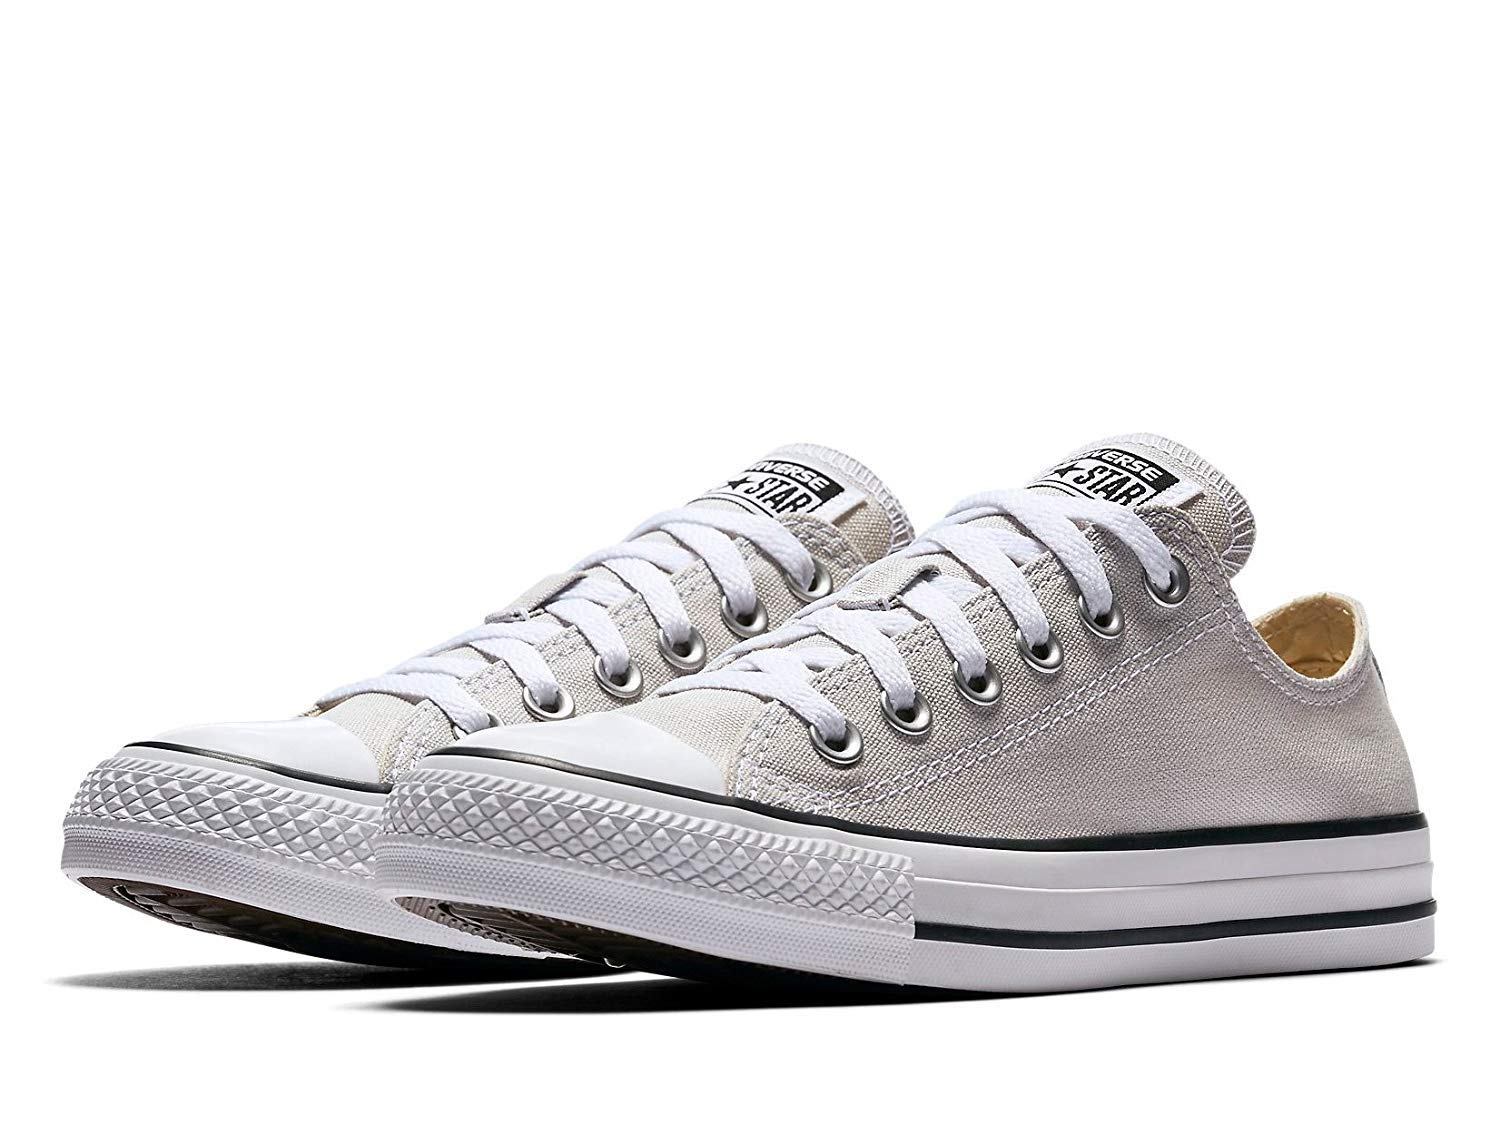 7da42898b6ceb8 Galleon - Converse Unisex Chuck Taylor All Star Ox Low Top Classic Sneakers